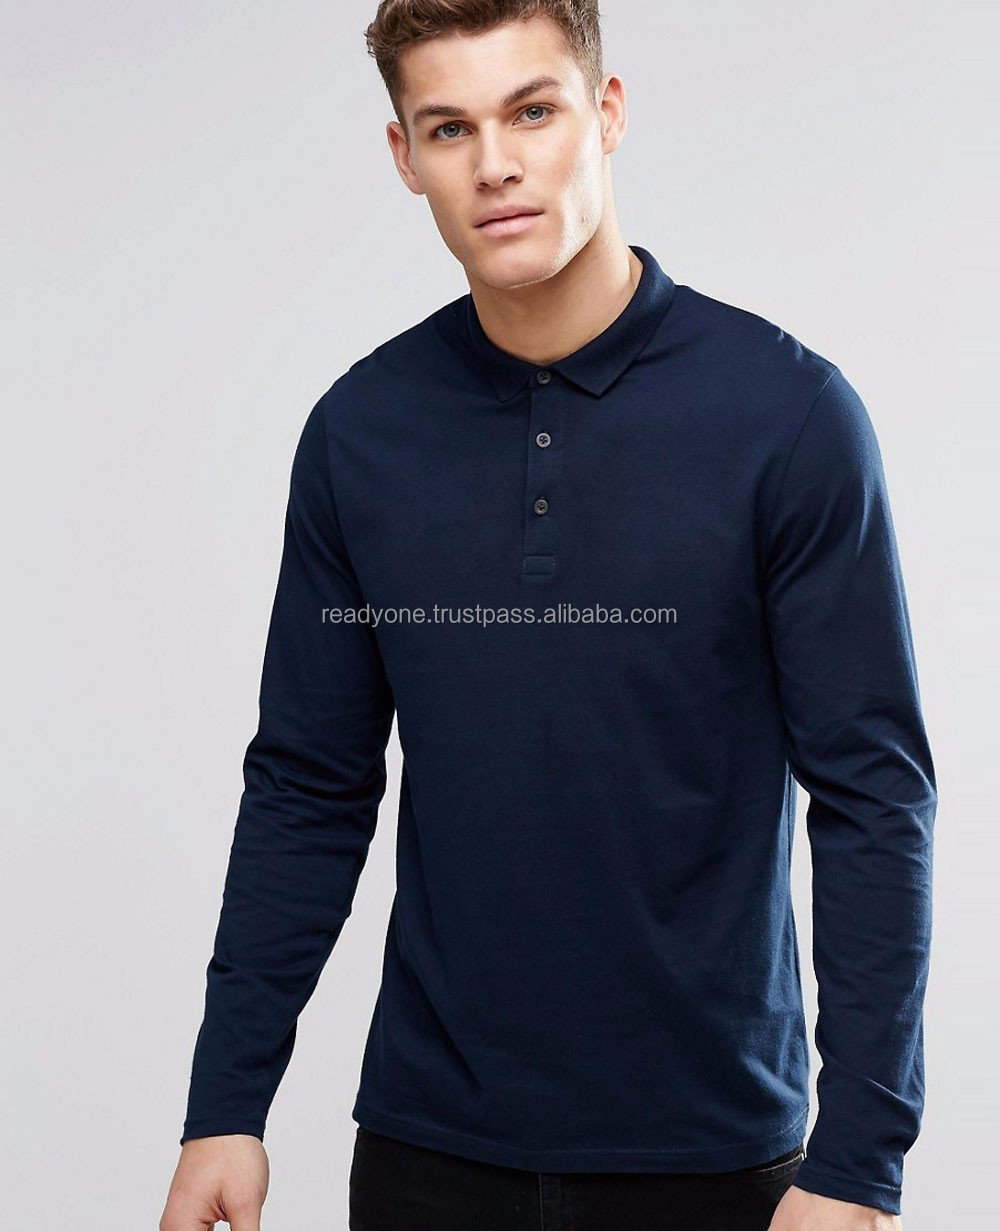 customize pique original man 100% preshrunk cotton polo t-shirt